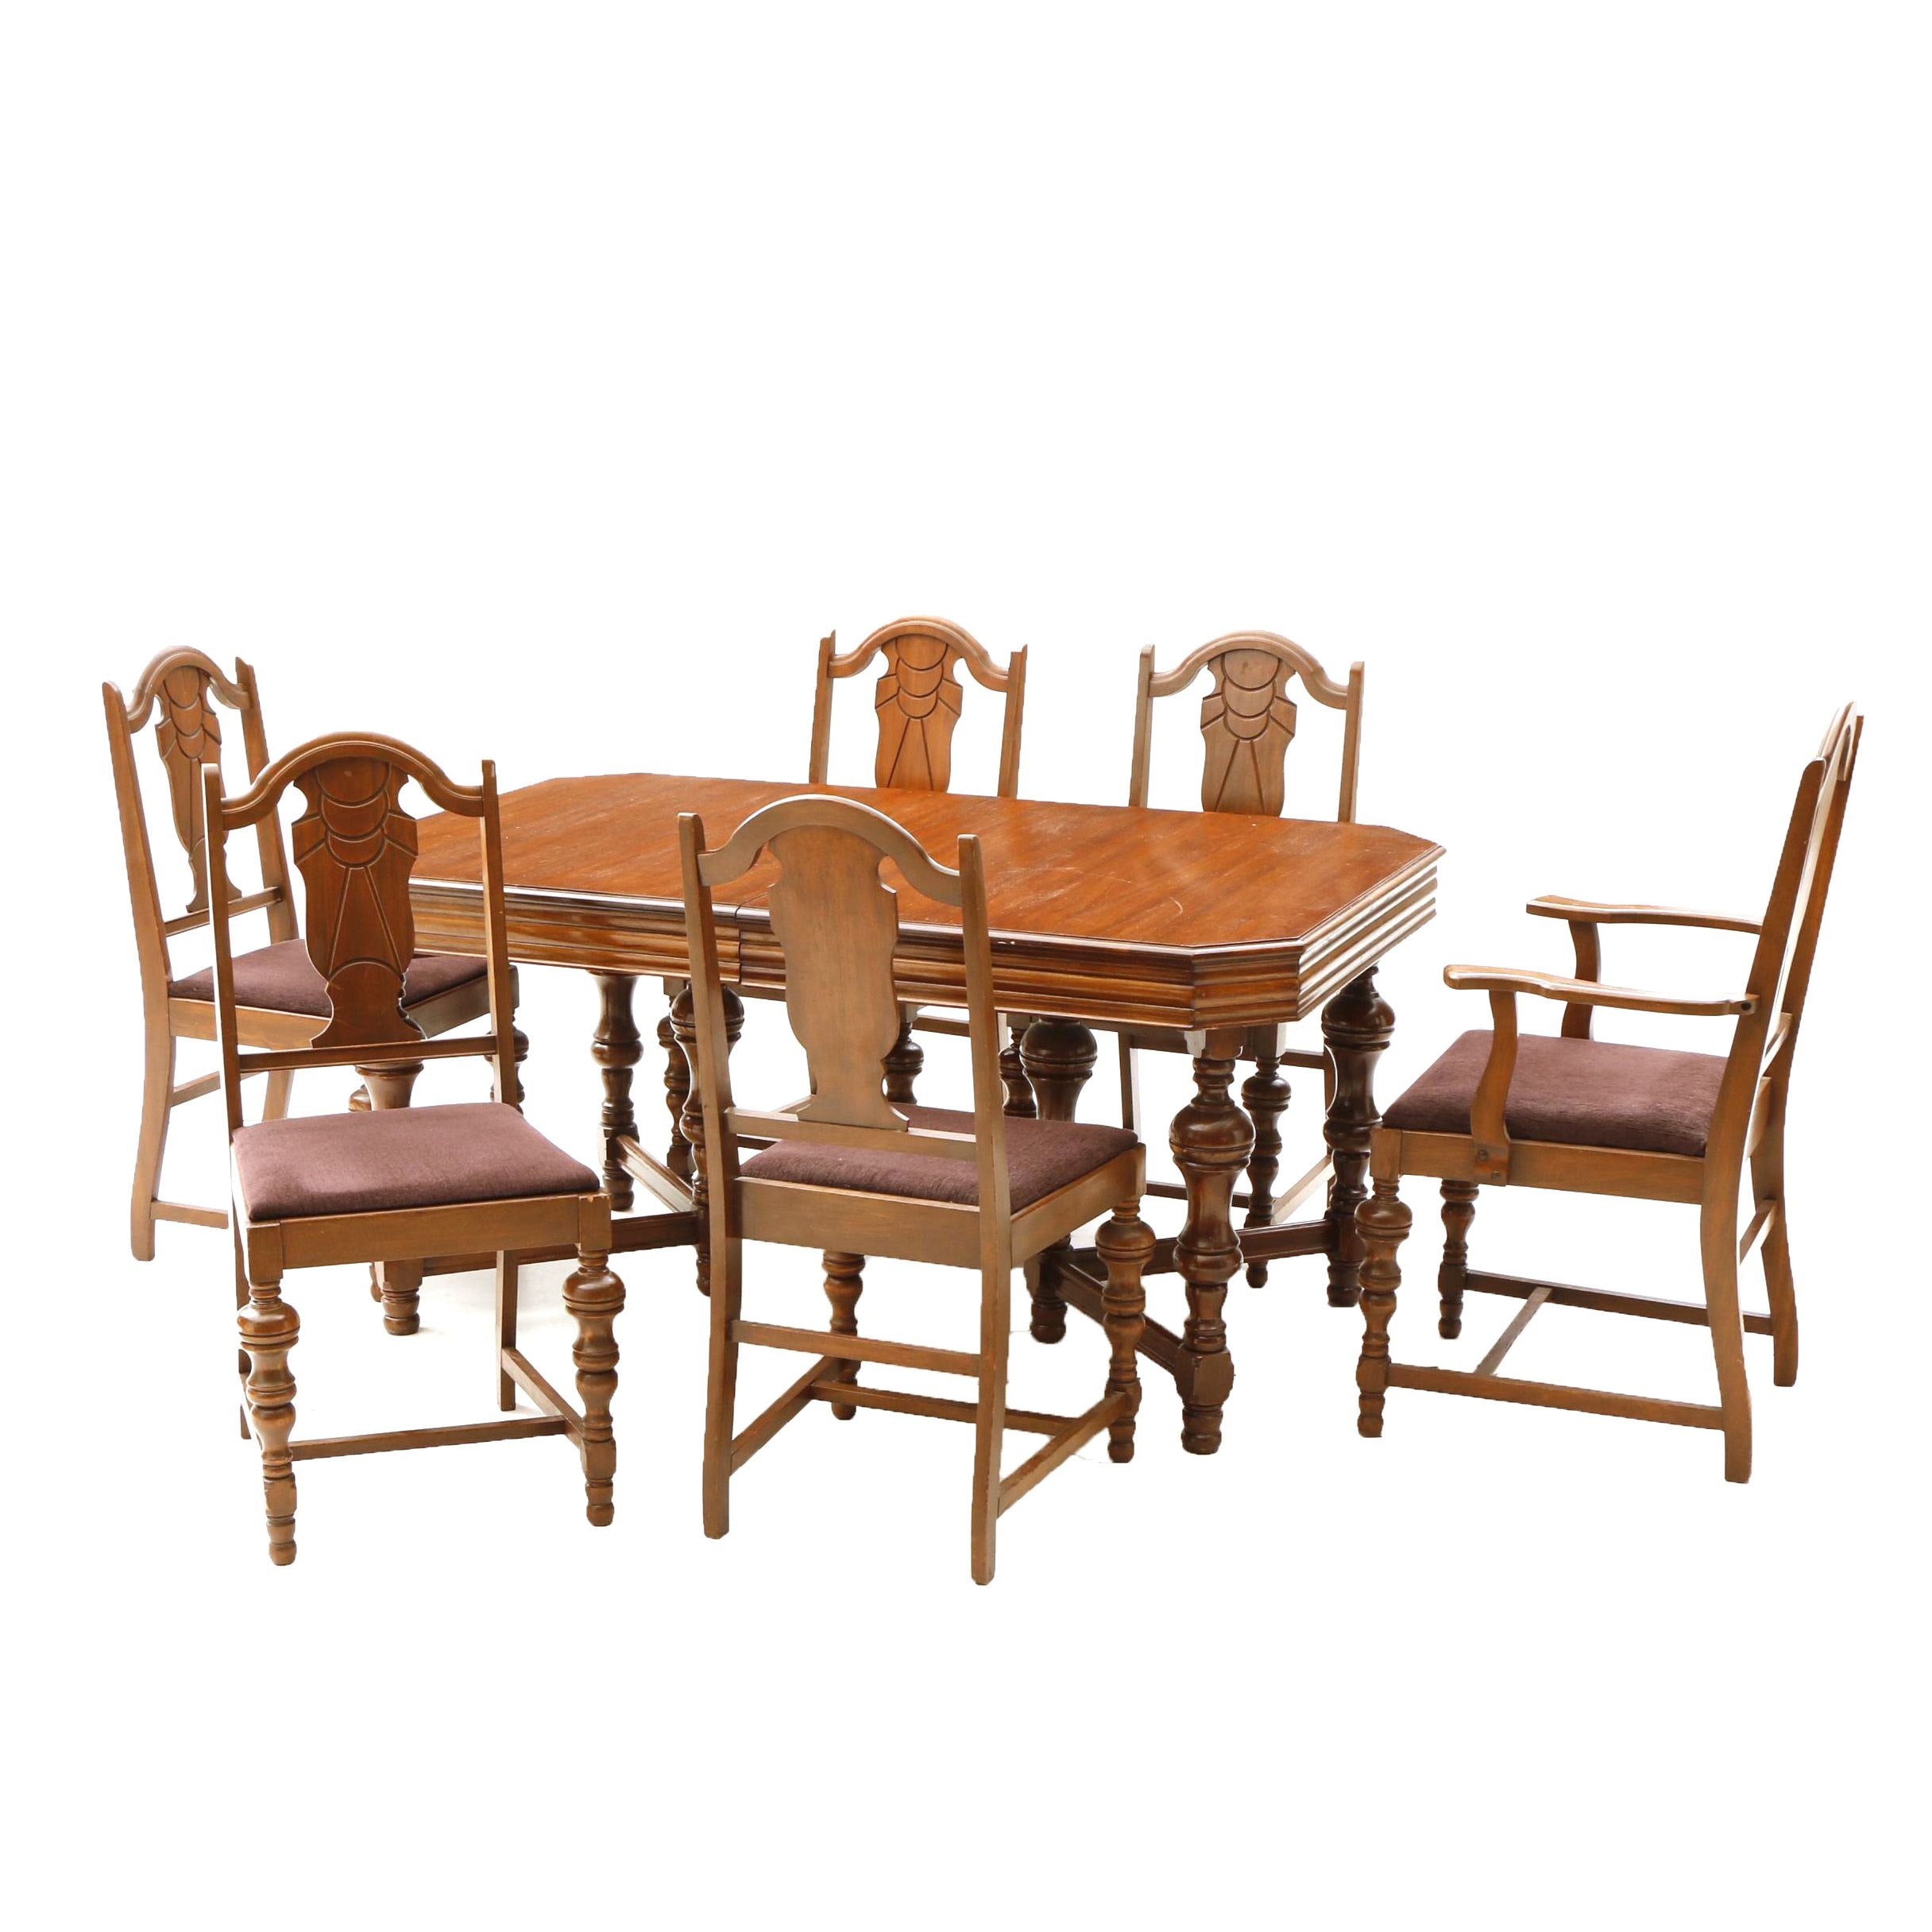 Vintage Dining Table With Six Upholstered Chairs